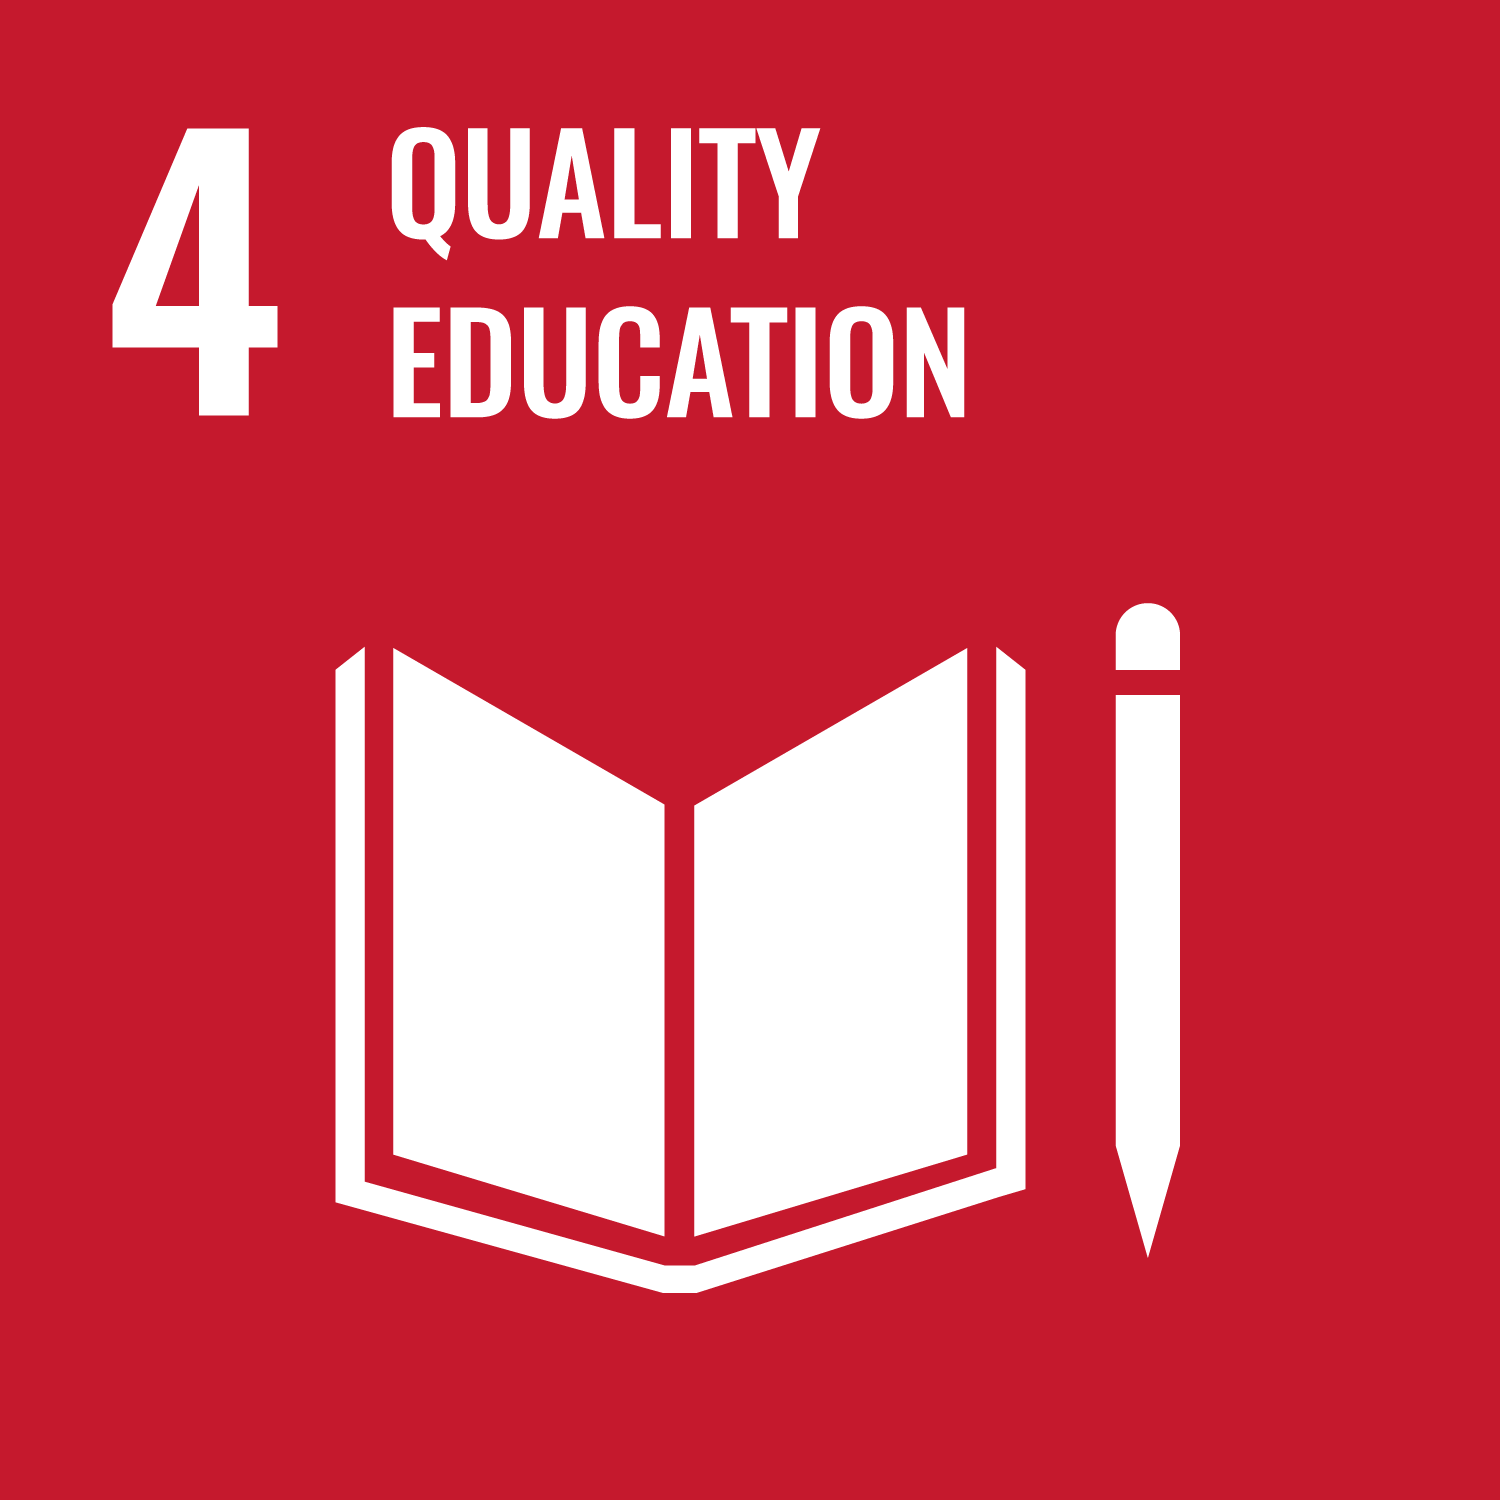 Goal 04 Quality Education